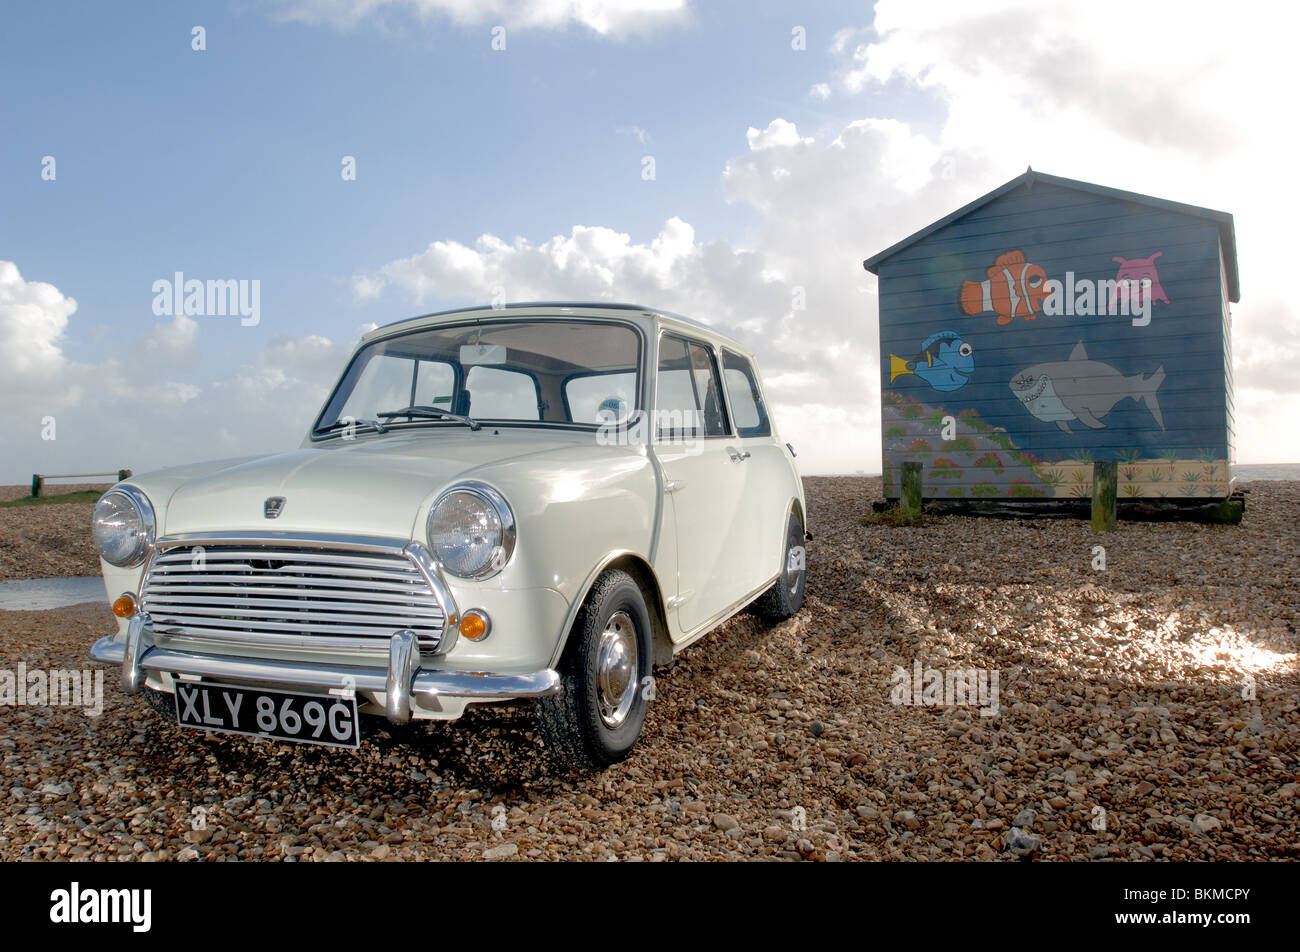 A White Austin Mini Cooper Mk2 Car Parked On A Pebble Beach On The